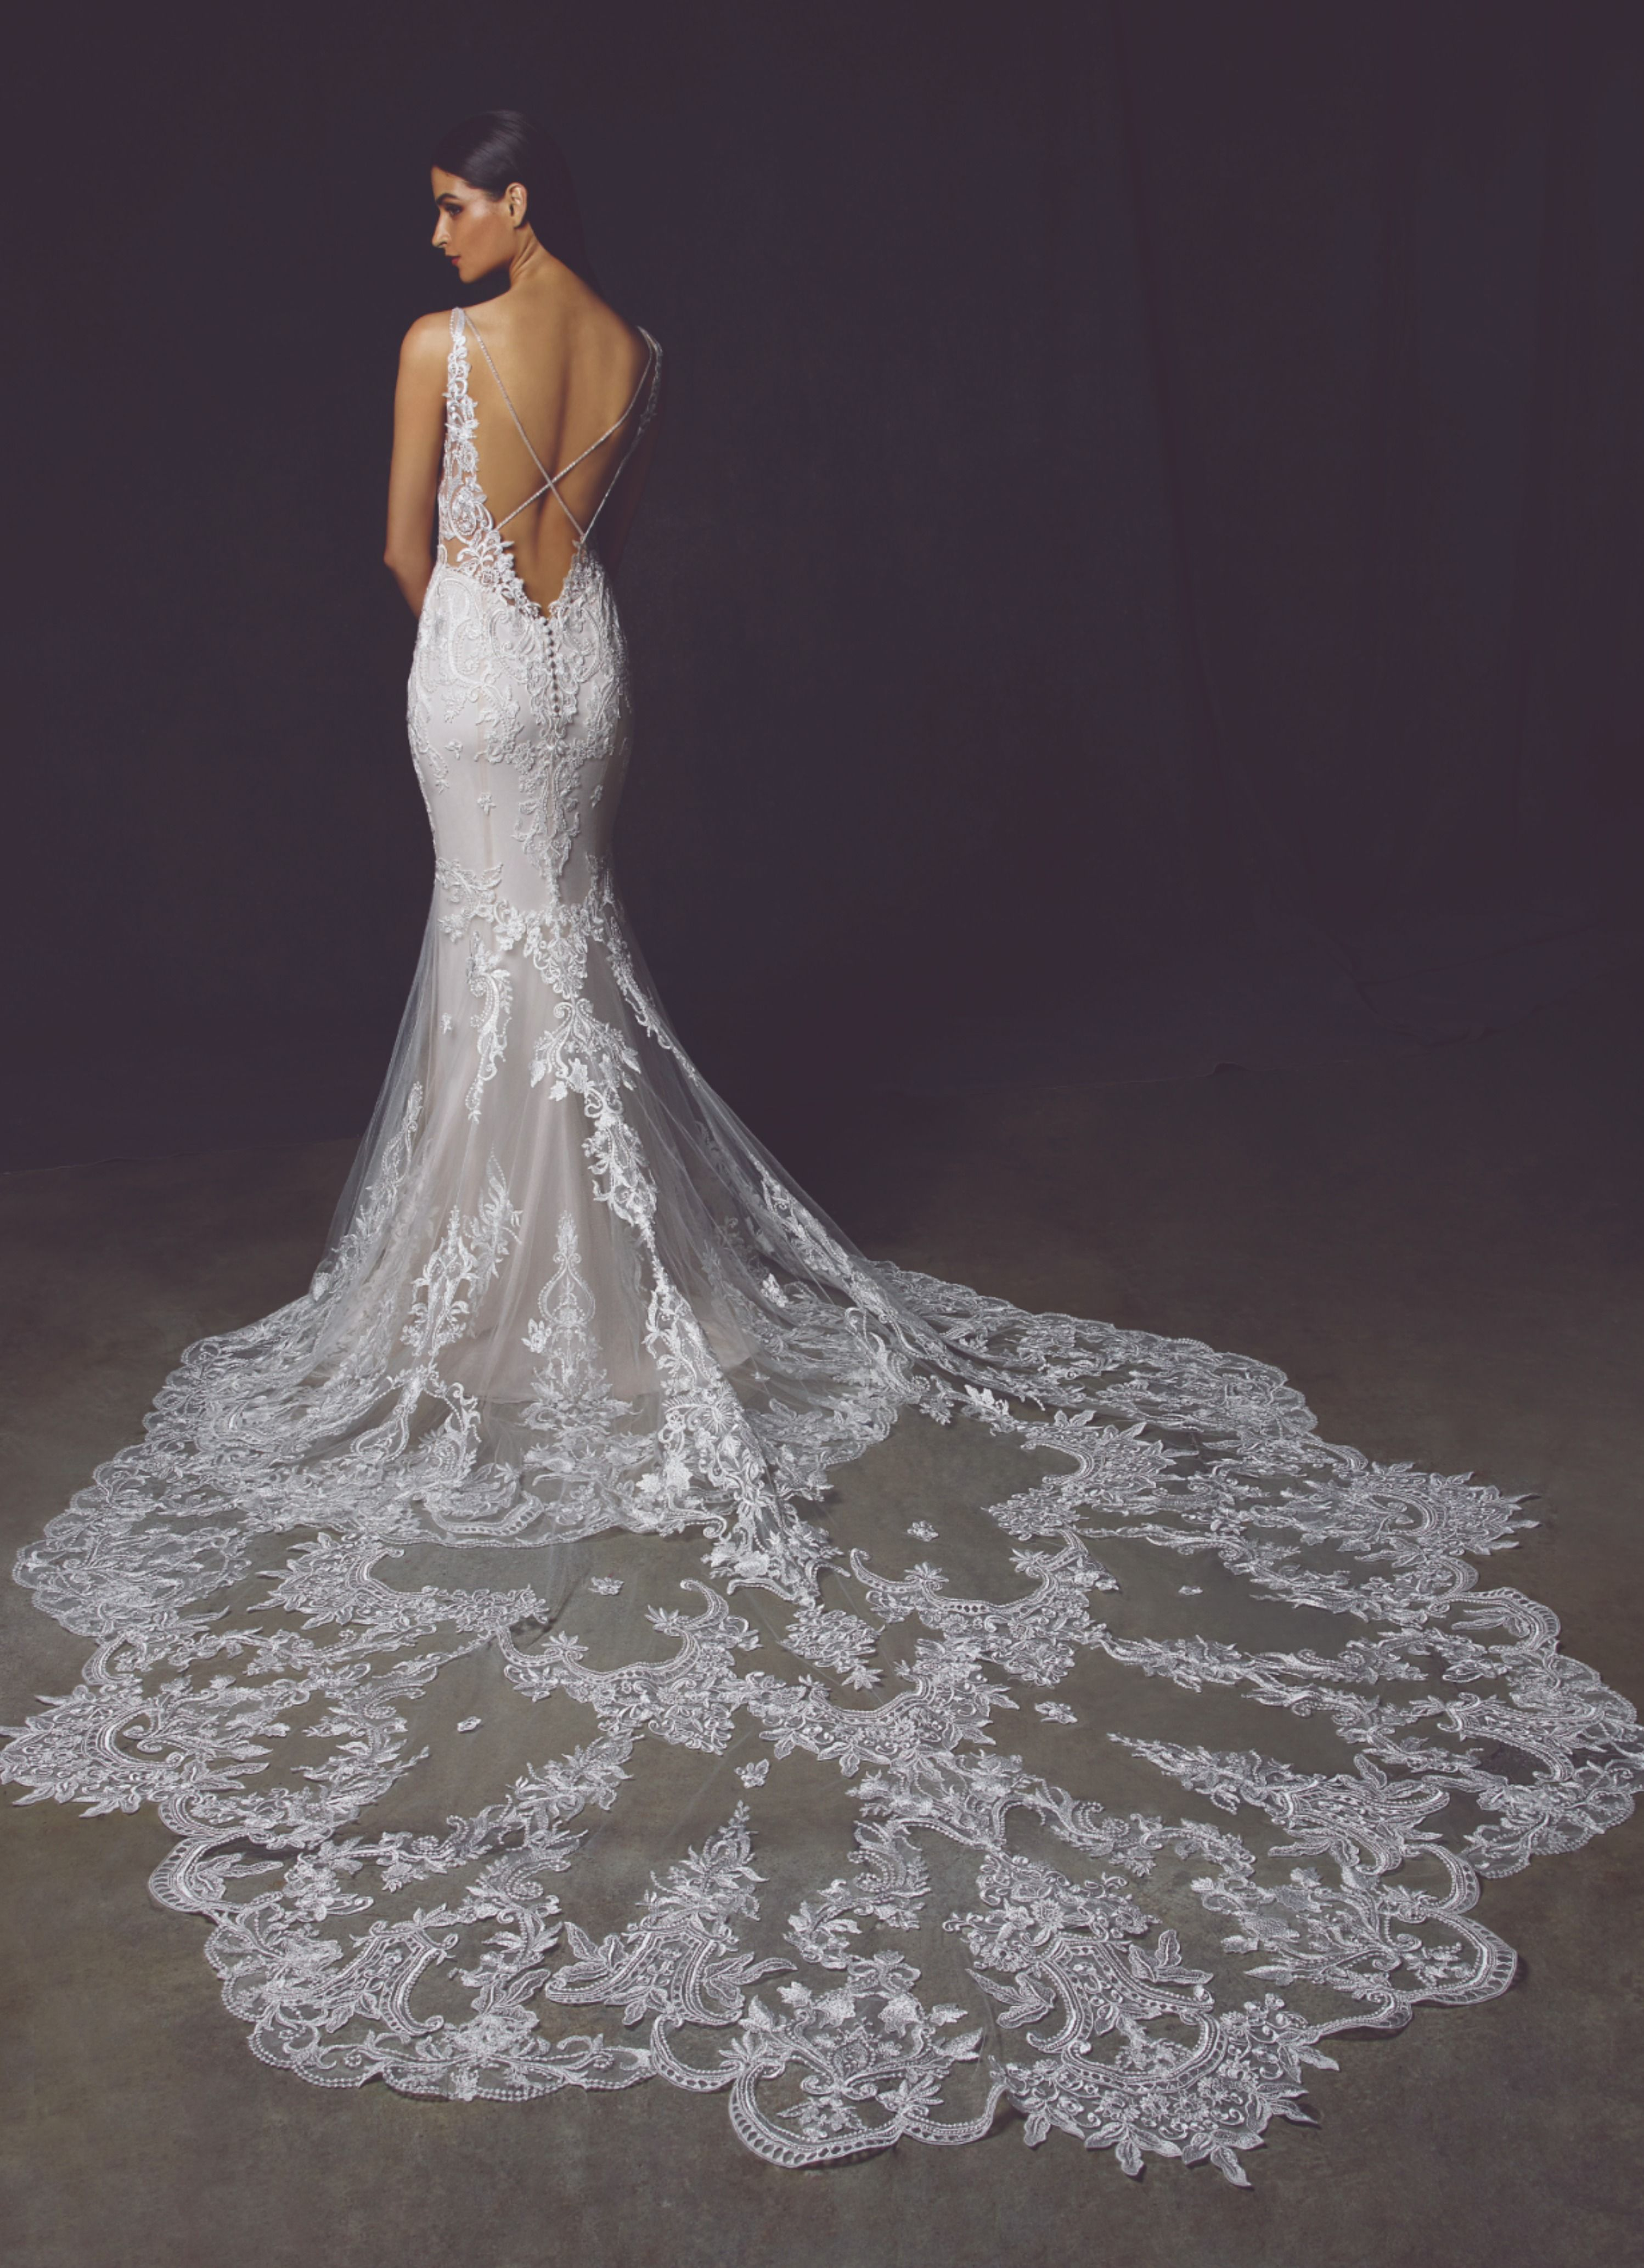 Low Back Lace Mermaid Wedding Dress With Statement Train Enzoani Wedding Dresses Wedding Dresses Enzoani Wedding Gowns [ 4133 x 2996 Pixel ]